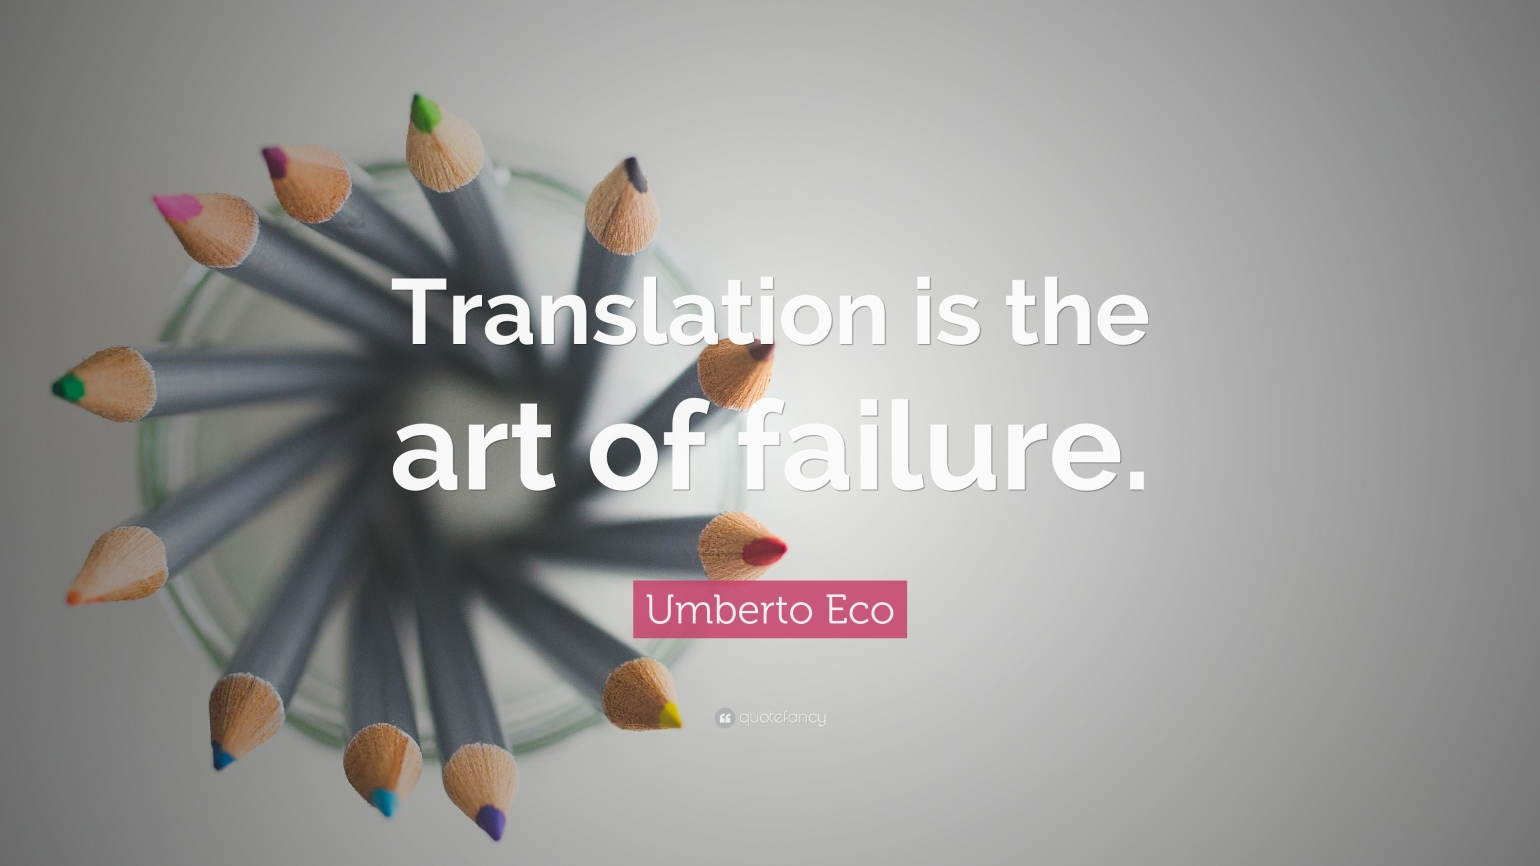 323928-Umberto-Eco-Quote-Translation-is-the-art-of-failure